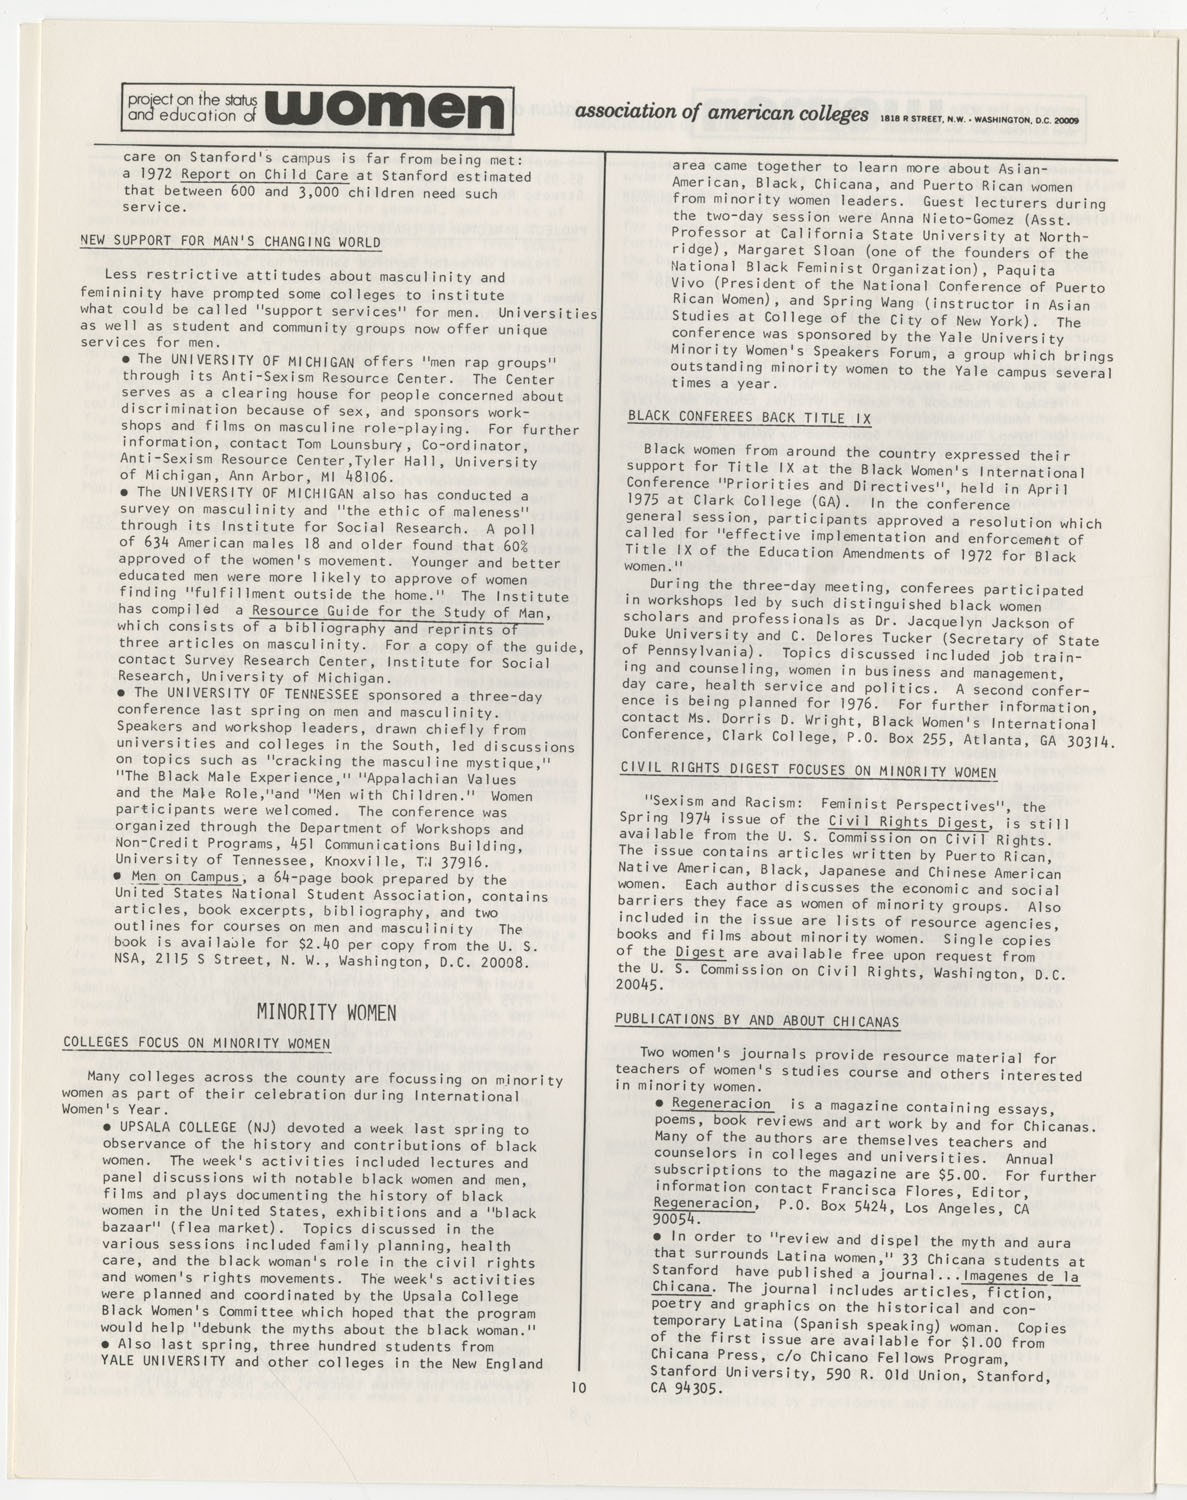 On Campus With Women, Association of American Colleges, November 1975, Page 10